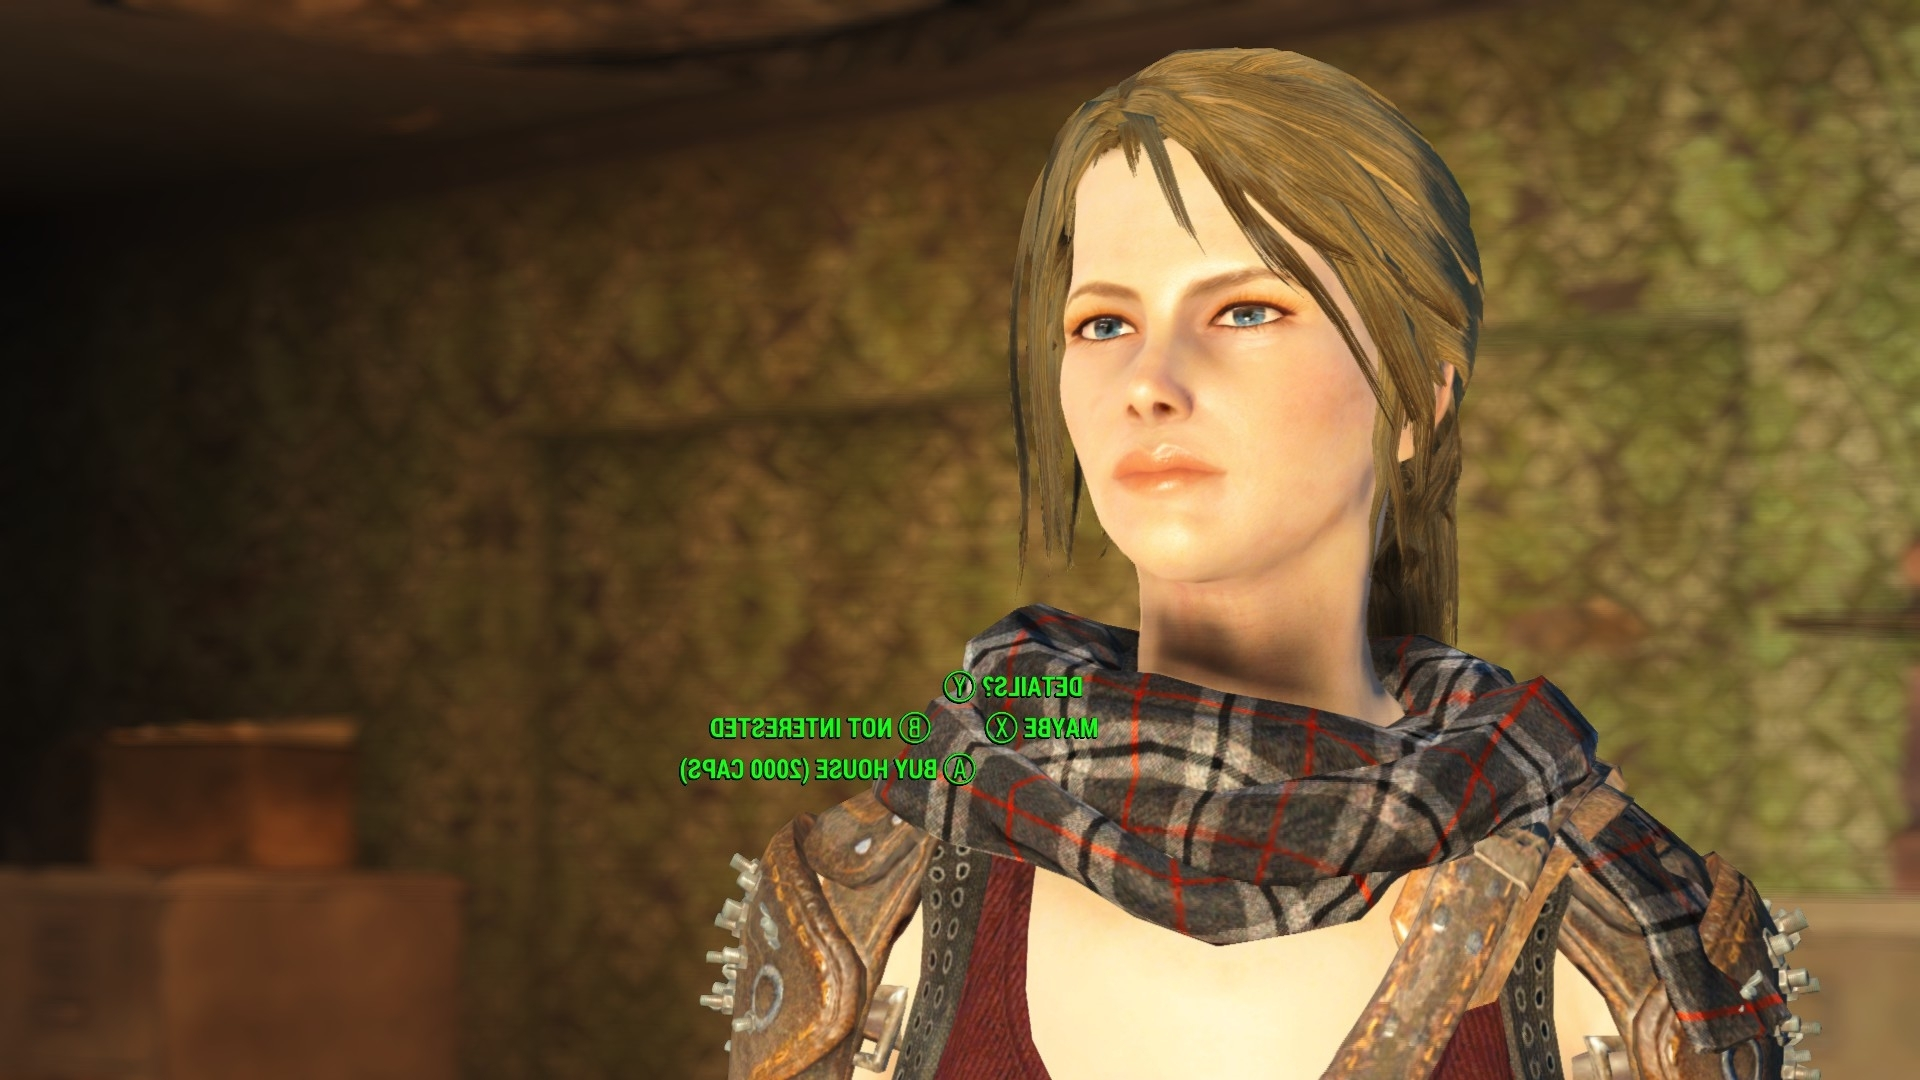 2018 Mod Ponytail Hairstyles Pertaining To Ponytail Hairstylesazar At Fallout 4 Nexus – Mods And Community (View 2 of 20)